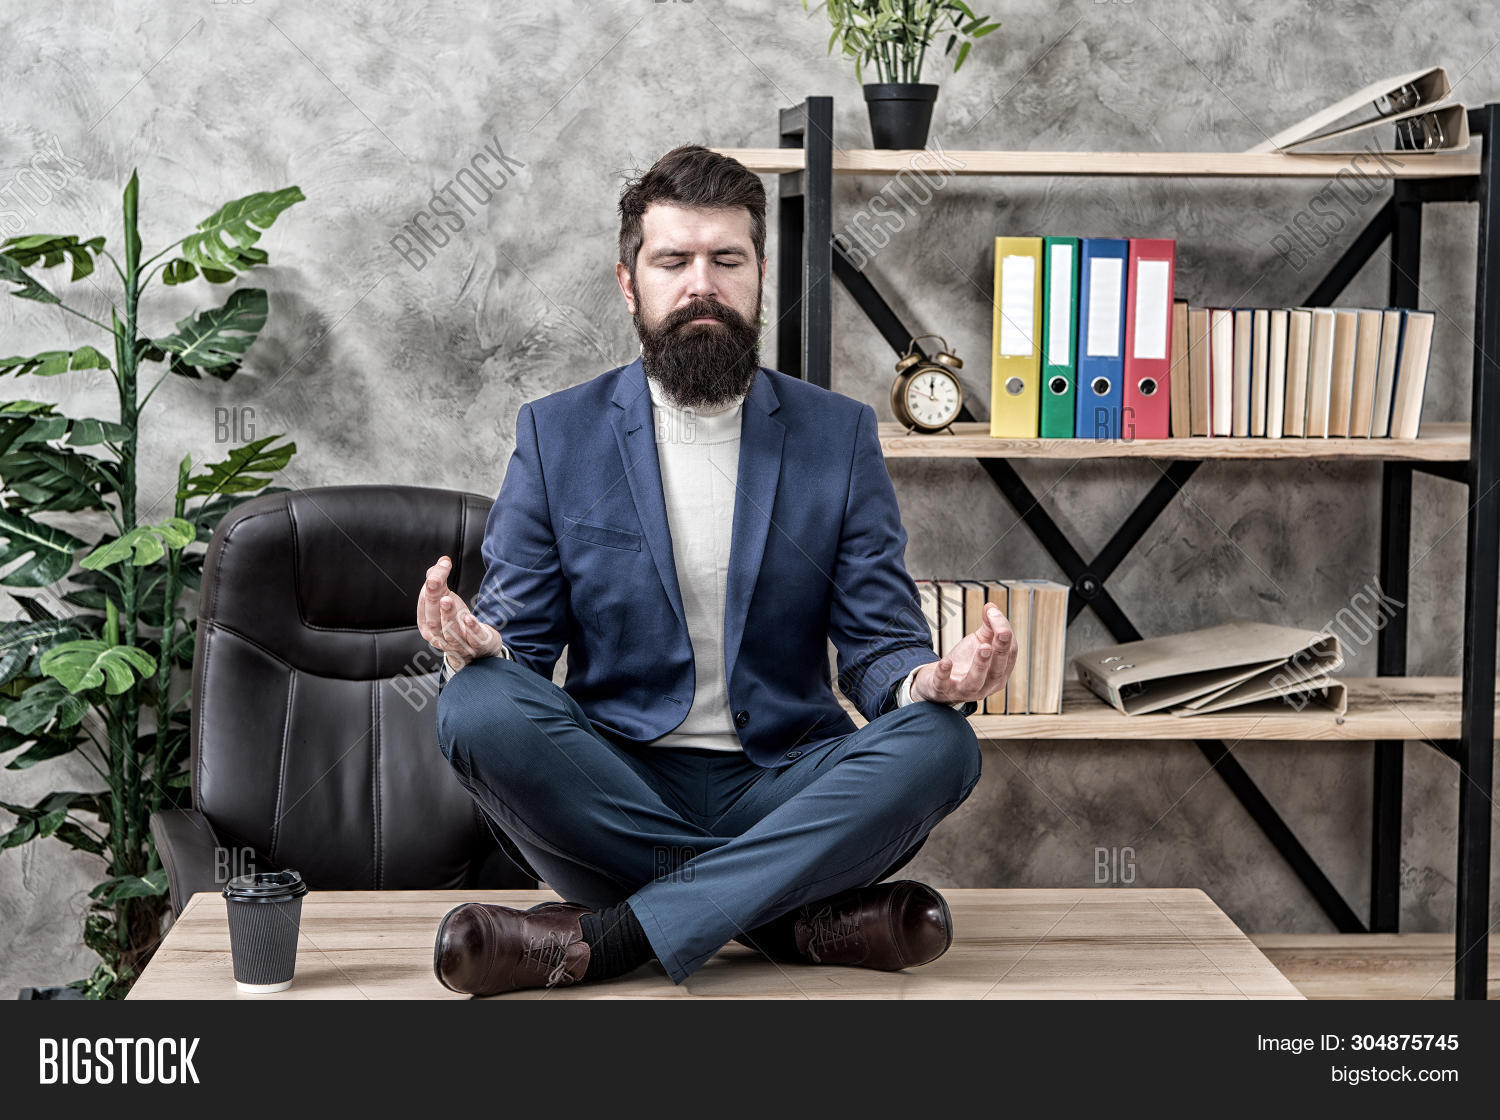 balance,bearded,boss,burnout,business,businessman,calm,care,caucasian,concept,day,executive,formal,healthy,help,lifestyle,lotus,man,manager,meditate,meditating,meditation,mental,office,peace,peaceful,pose,practice,prevent,professional,psychological,relax,relaxation,relaxing,rest,self,sit,stress,success,suit,techniques,to,way,wellbeing,worker,yoga,zen